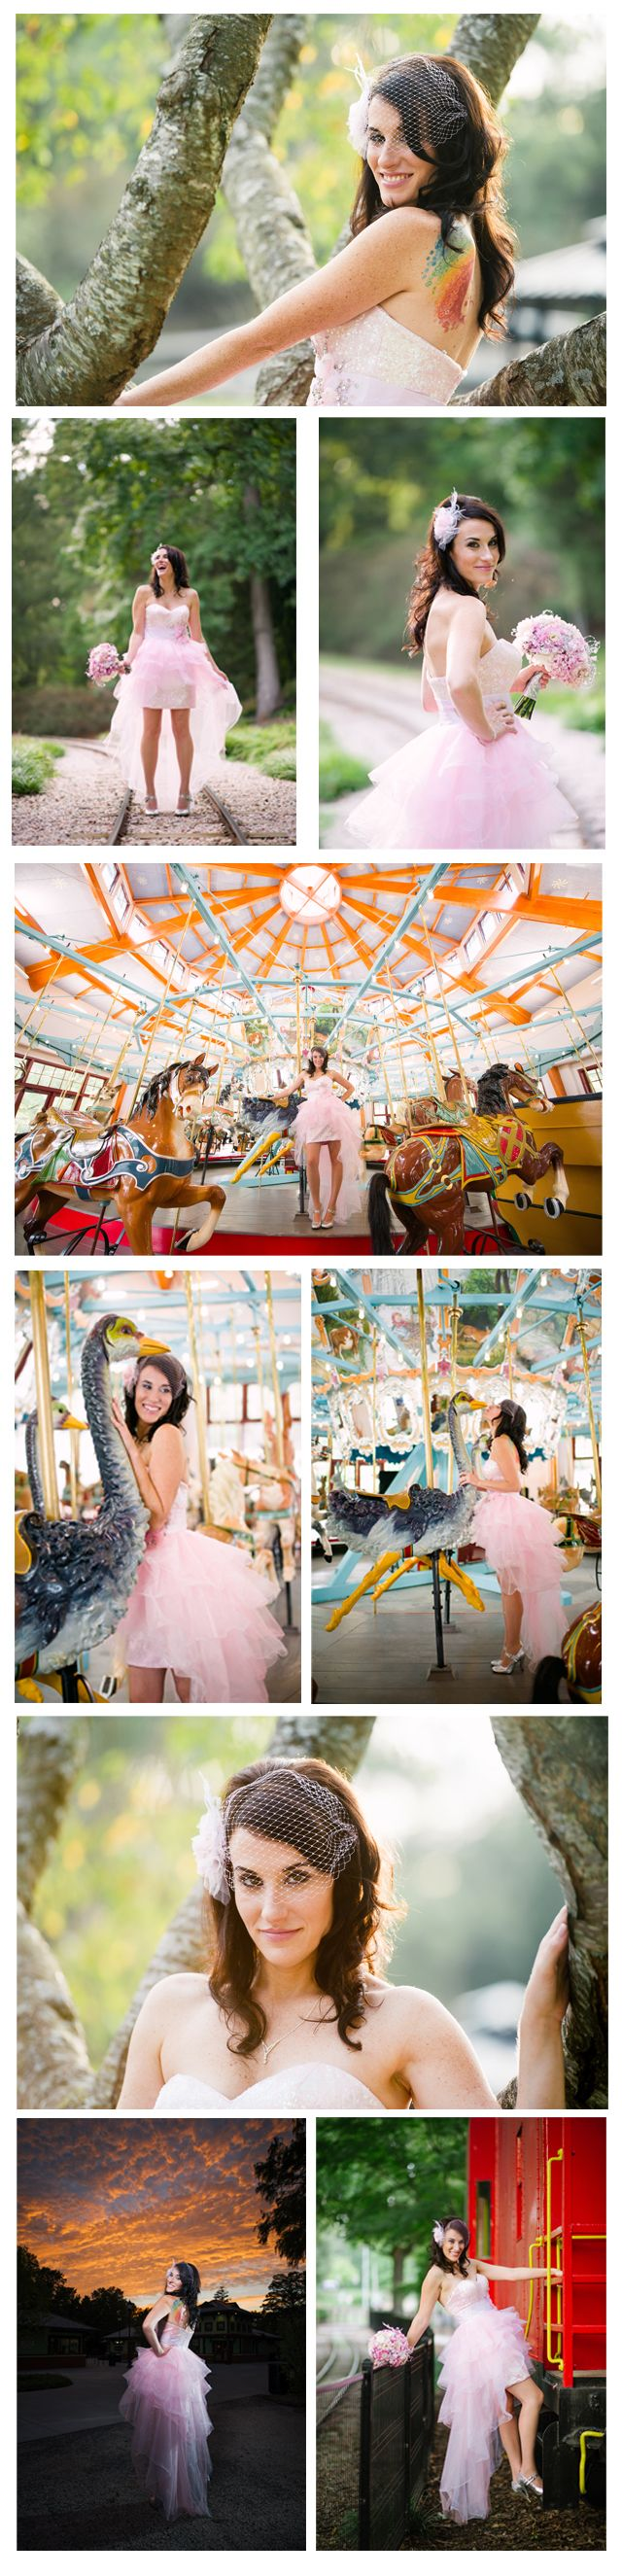 Top 21 ideas about themed wedding ideas on pinterest for 80s prom decoration ideas